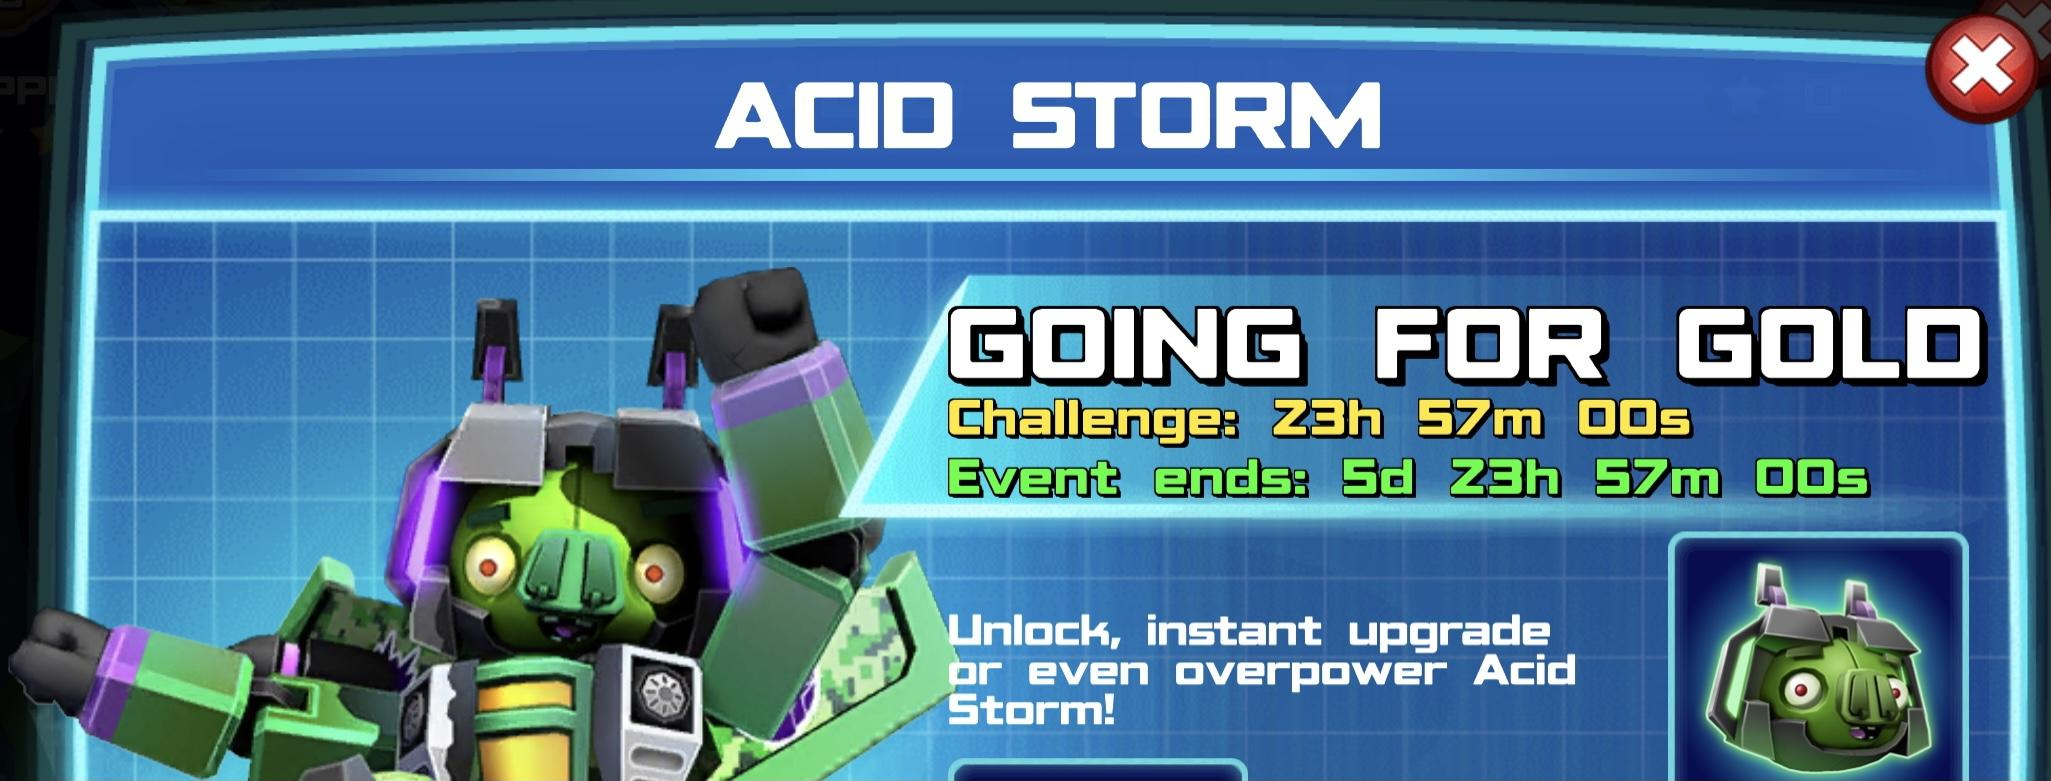 The event banner for Acid Storm